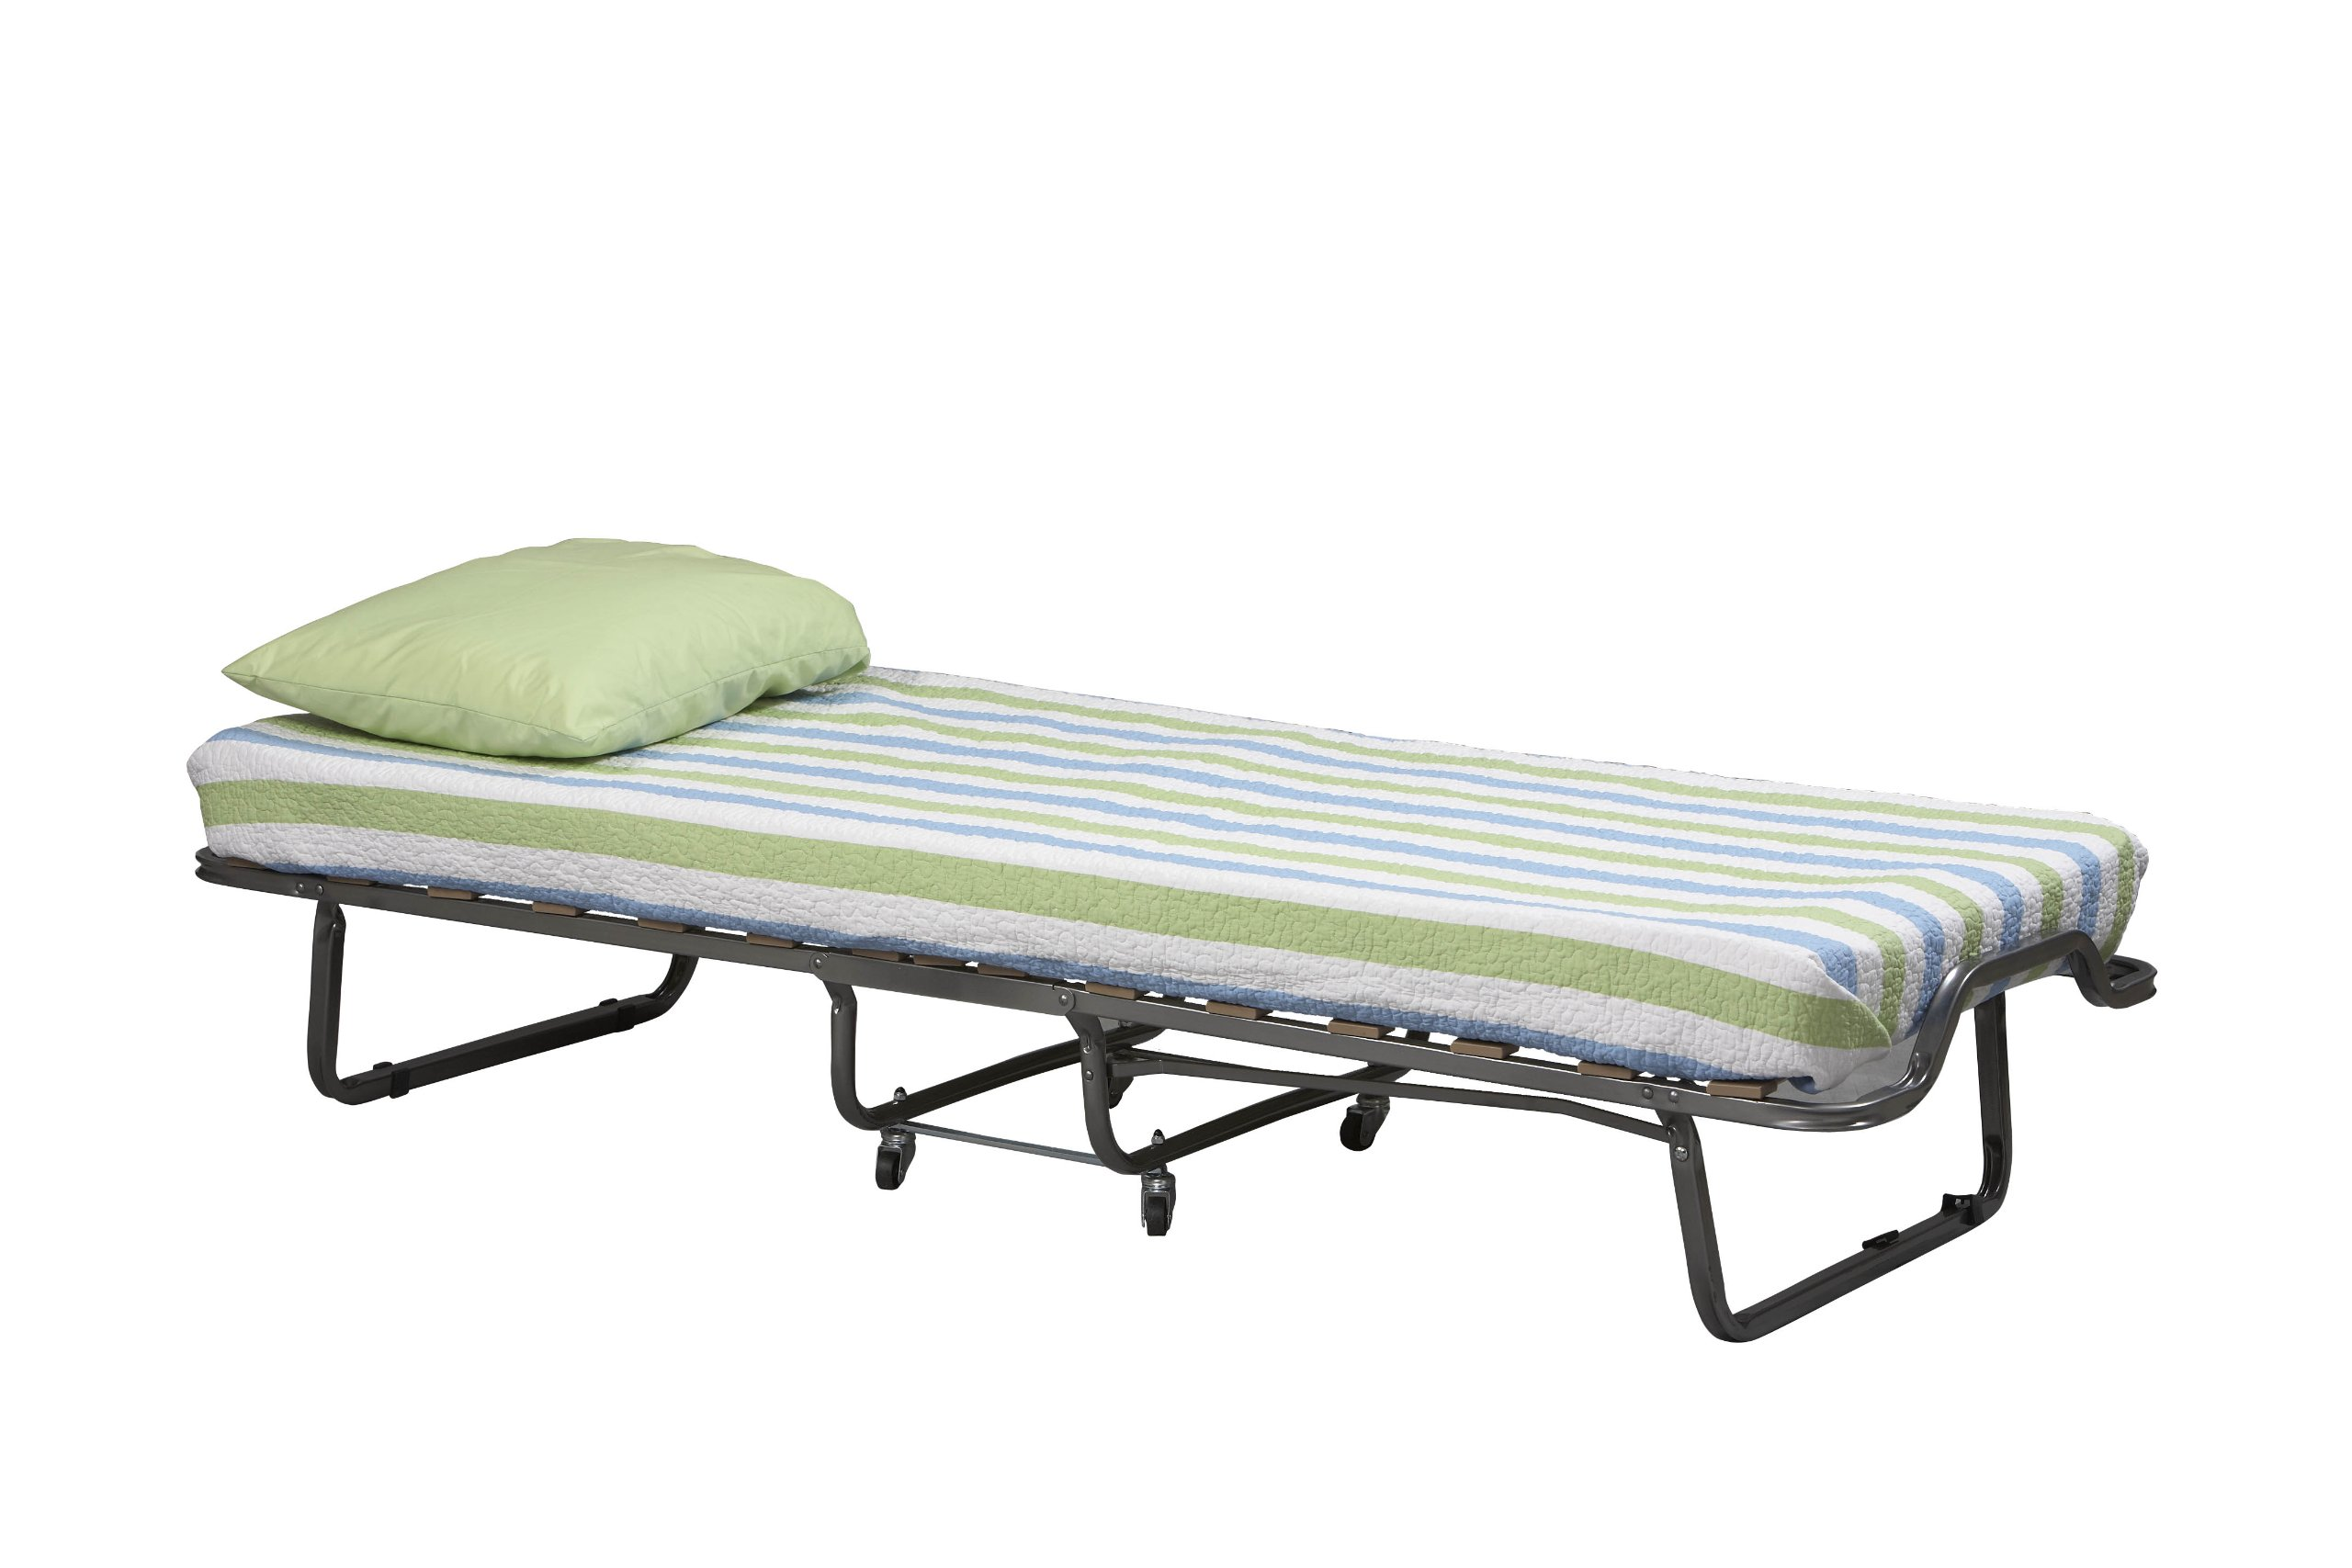 Linon Home Decor Luxor Folding Bed with Memory Foam by Linon Home Dcor (Image #4)